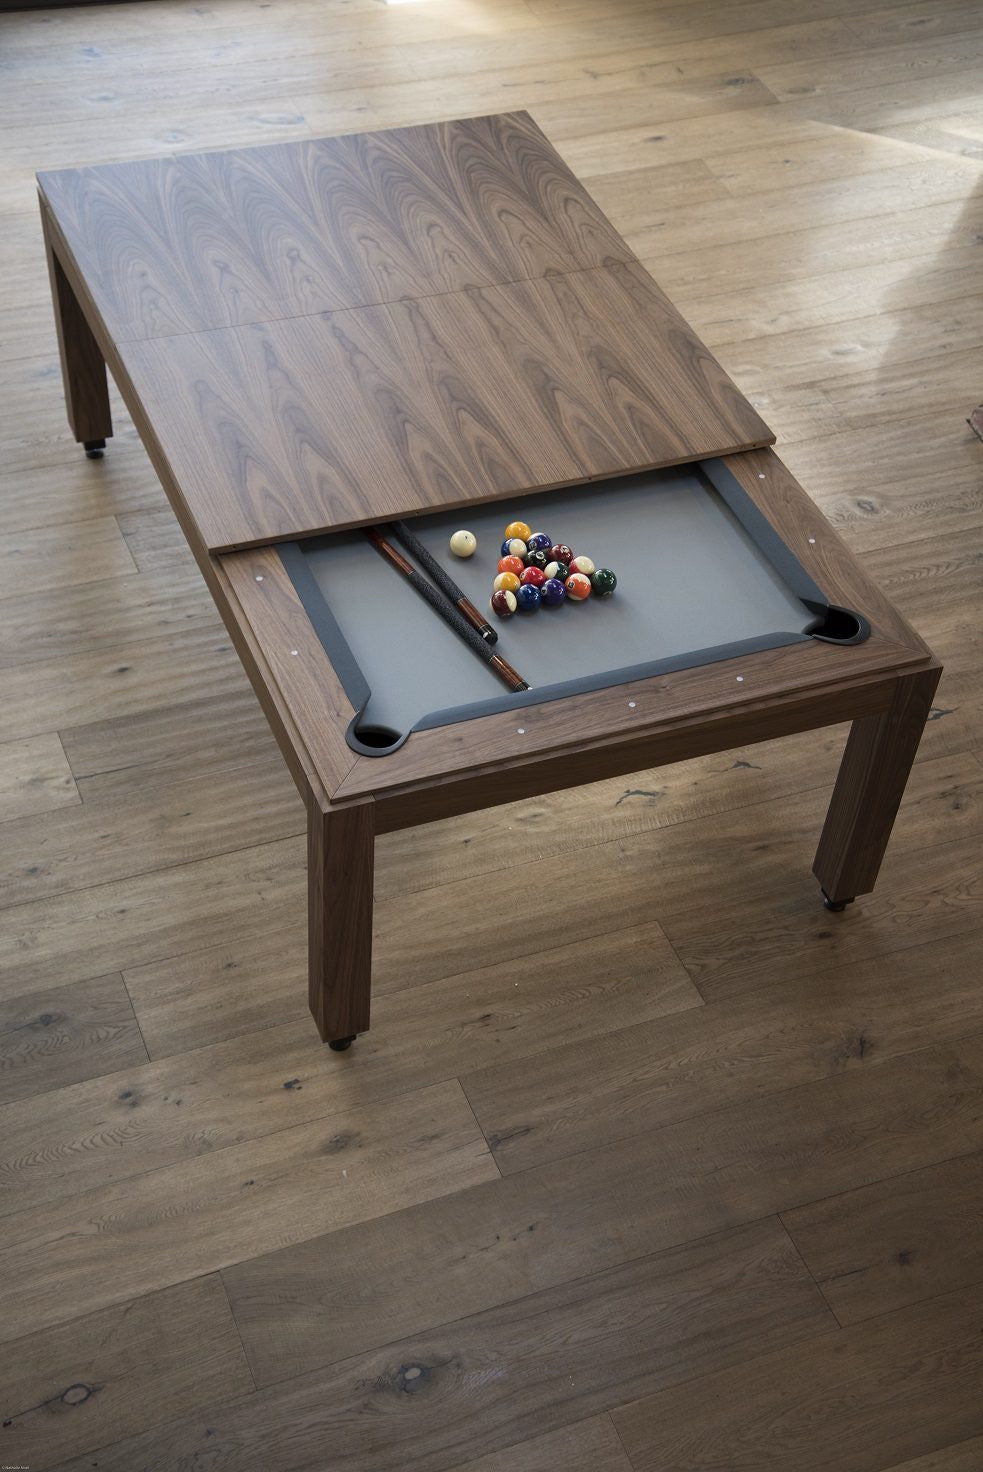 Ordinaire ... Fusion Wood Line Dining Pool Table Walnut Top ...